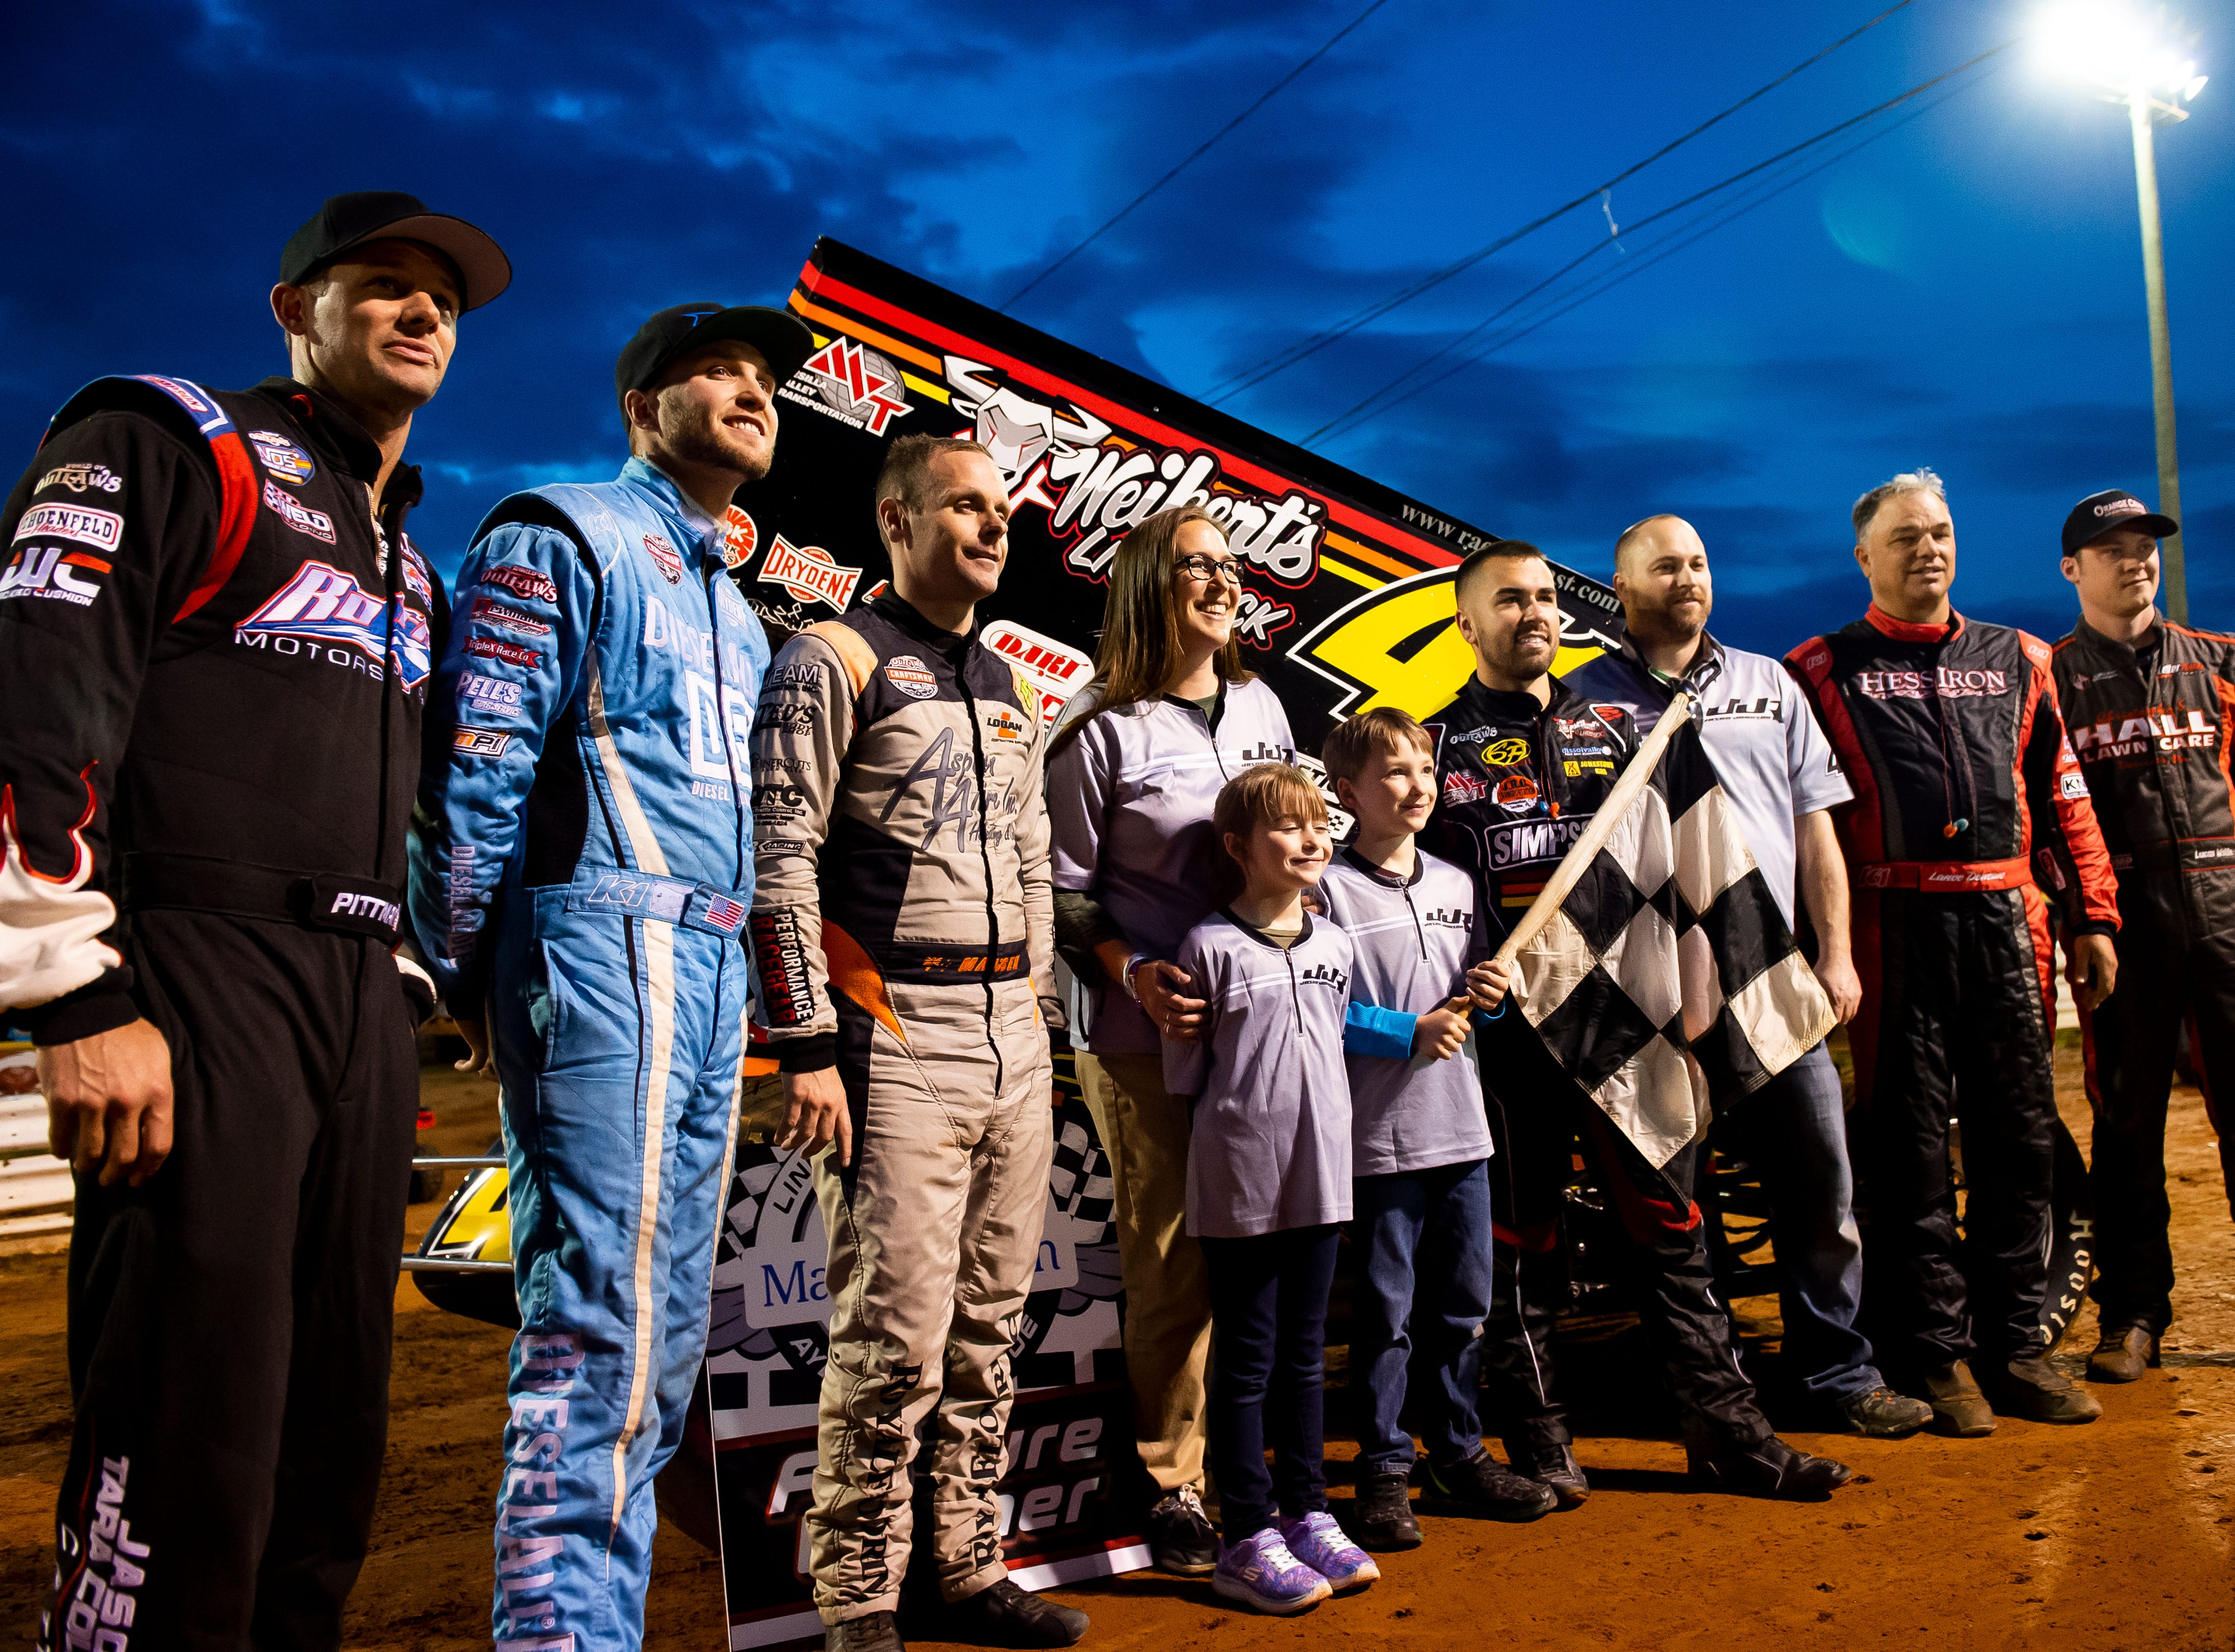 Ayden Gora, 8, of Duncannon, holds the checkered flag as he poses for photos with his family and a host of drivers before the start of the World of Outlaws Gettysburg Clash at Lincoln Speedway in Abbottstown on Wednesday, May 15, 2019. Ayden was able to serve as an honorary crew member with David Gravel's team thanks to the Make-A-Wish Foundation,